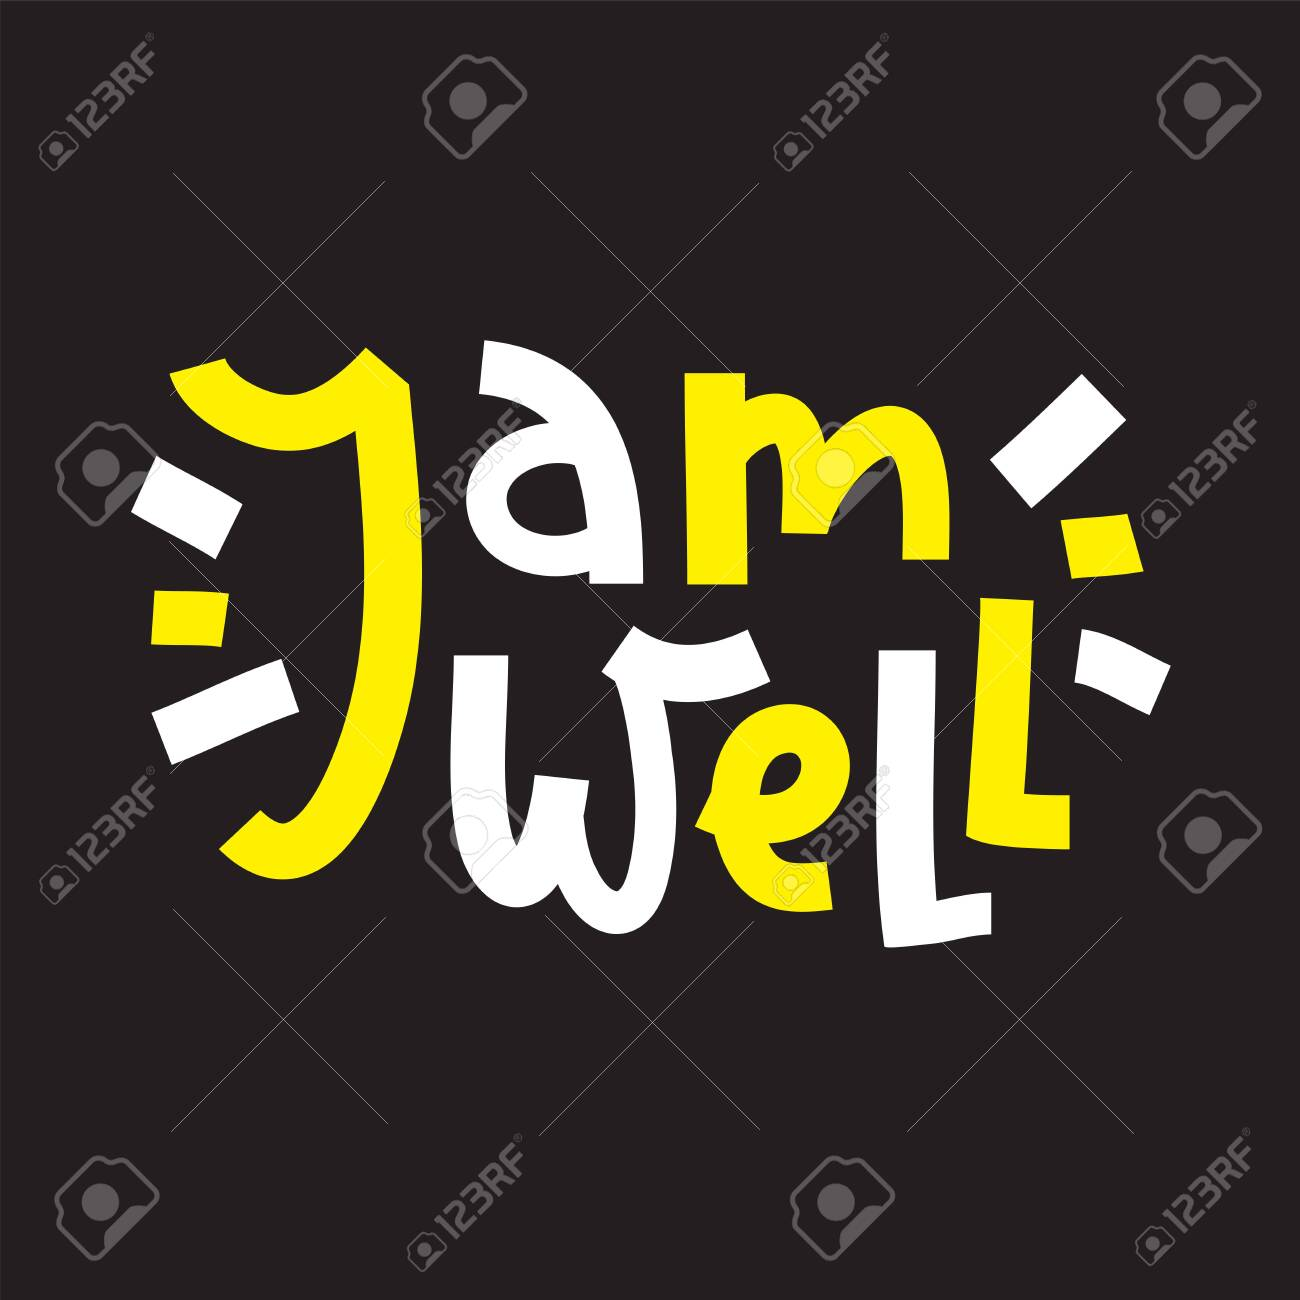 I am well - inspire motivational quote. Hand drawn beautiful lettering. Print for inspirational poster, t-shirt, bag, cups, card, flyer, sticker, badge. Cute funny vector writing - 143676410